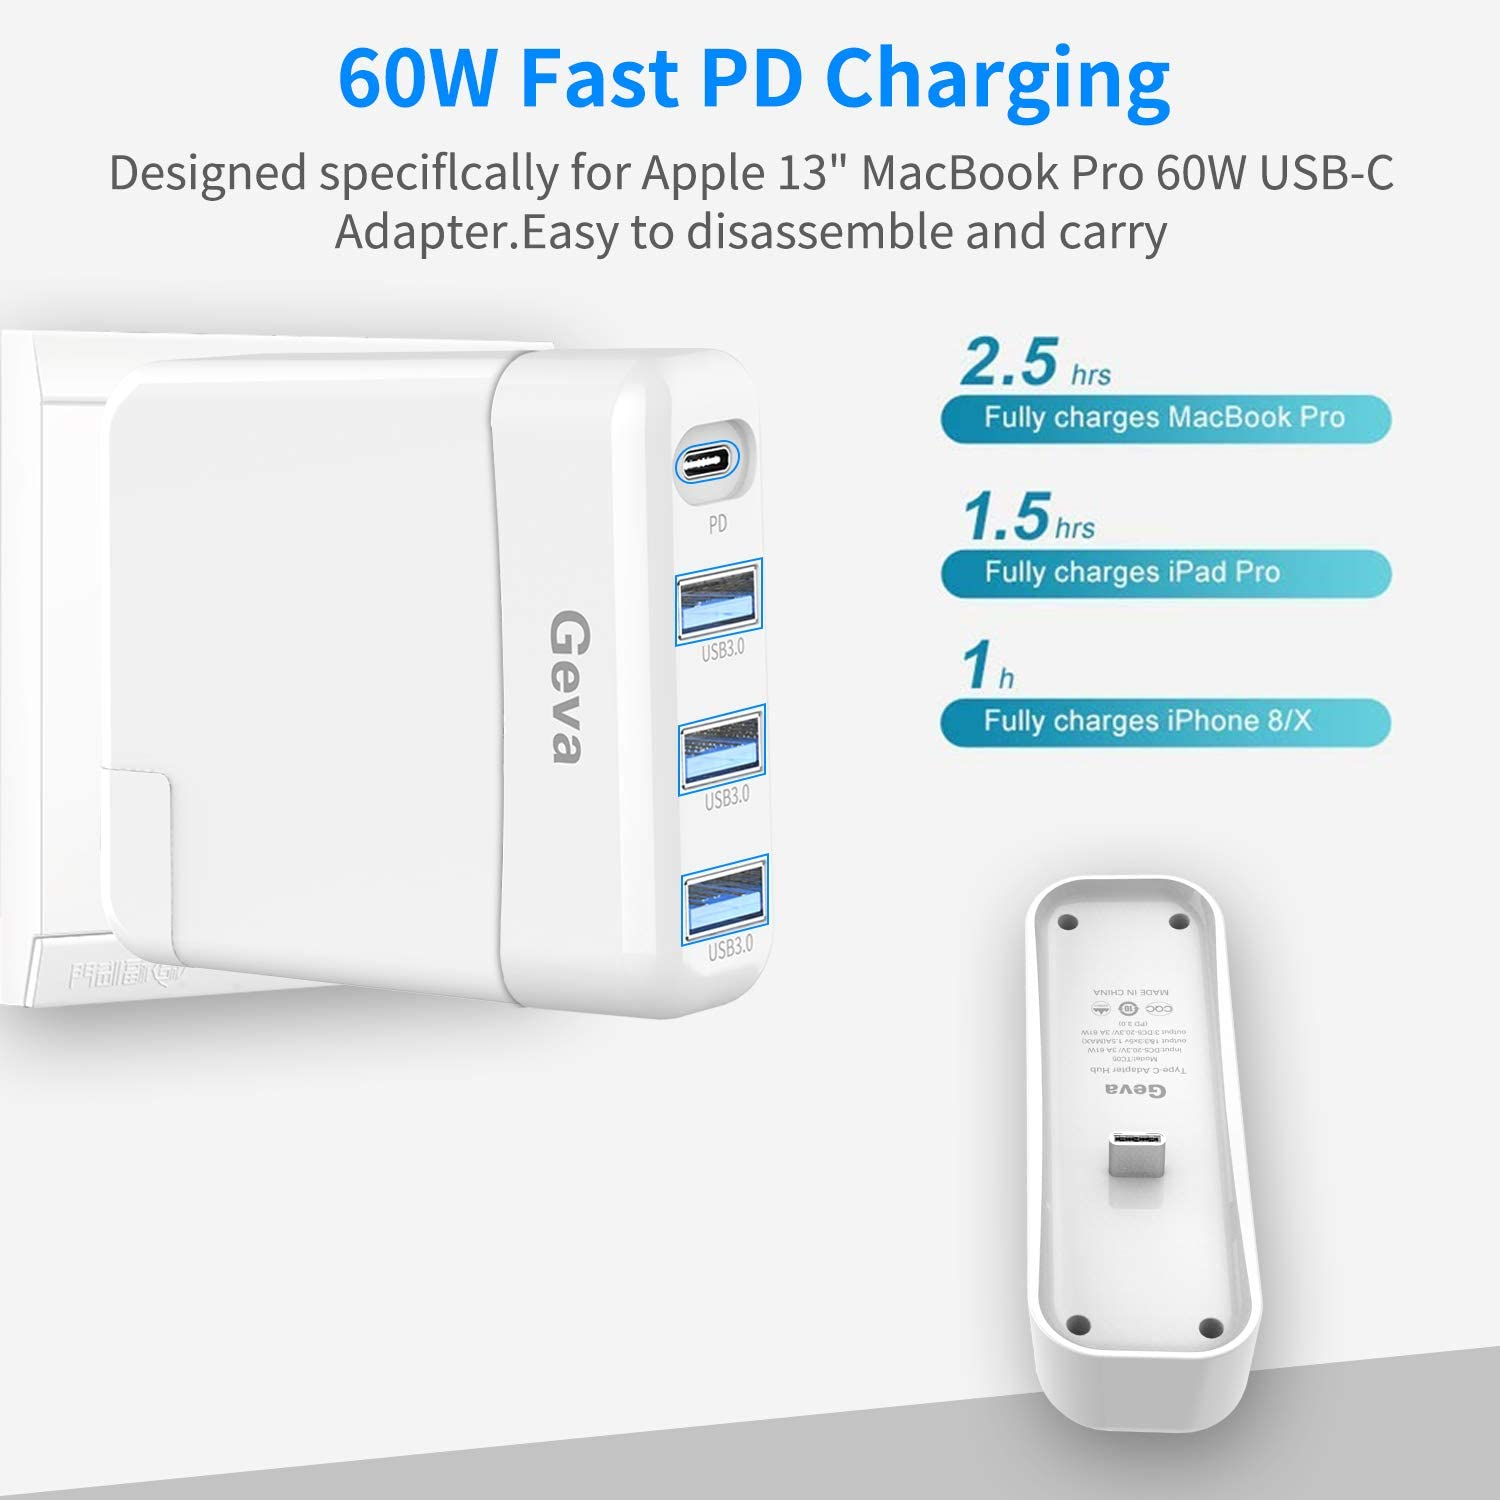 USB-C Charger Hub USB-C Wall Charger Converter for Mac Book Pro 2016/Mac Book Air 2018 and After Generation ,61W/30W Optional